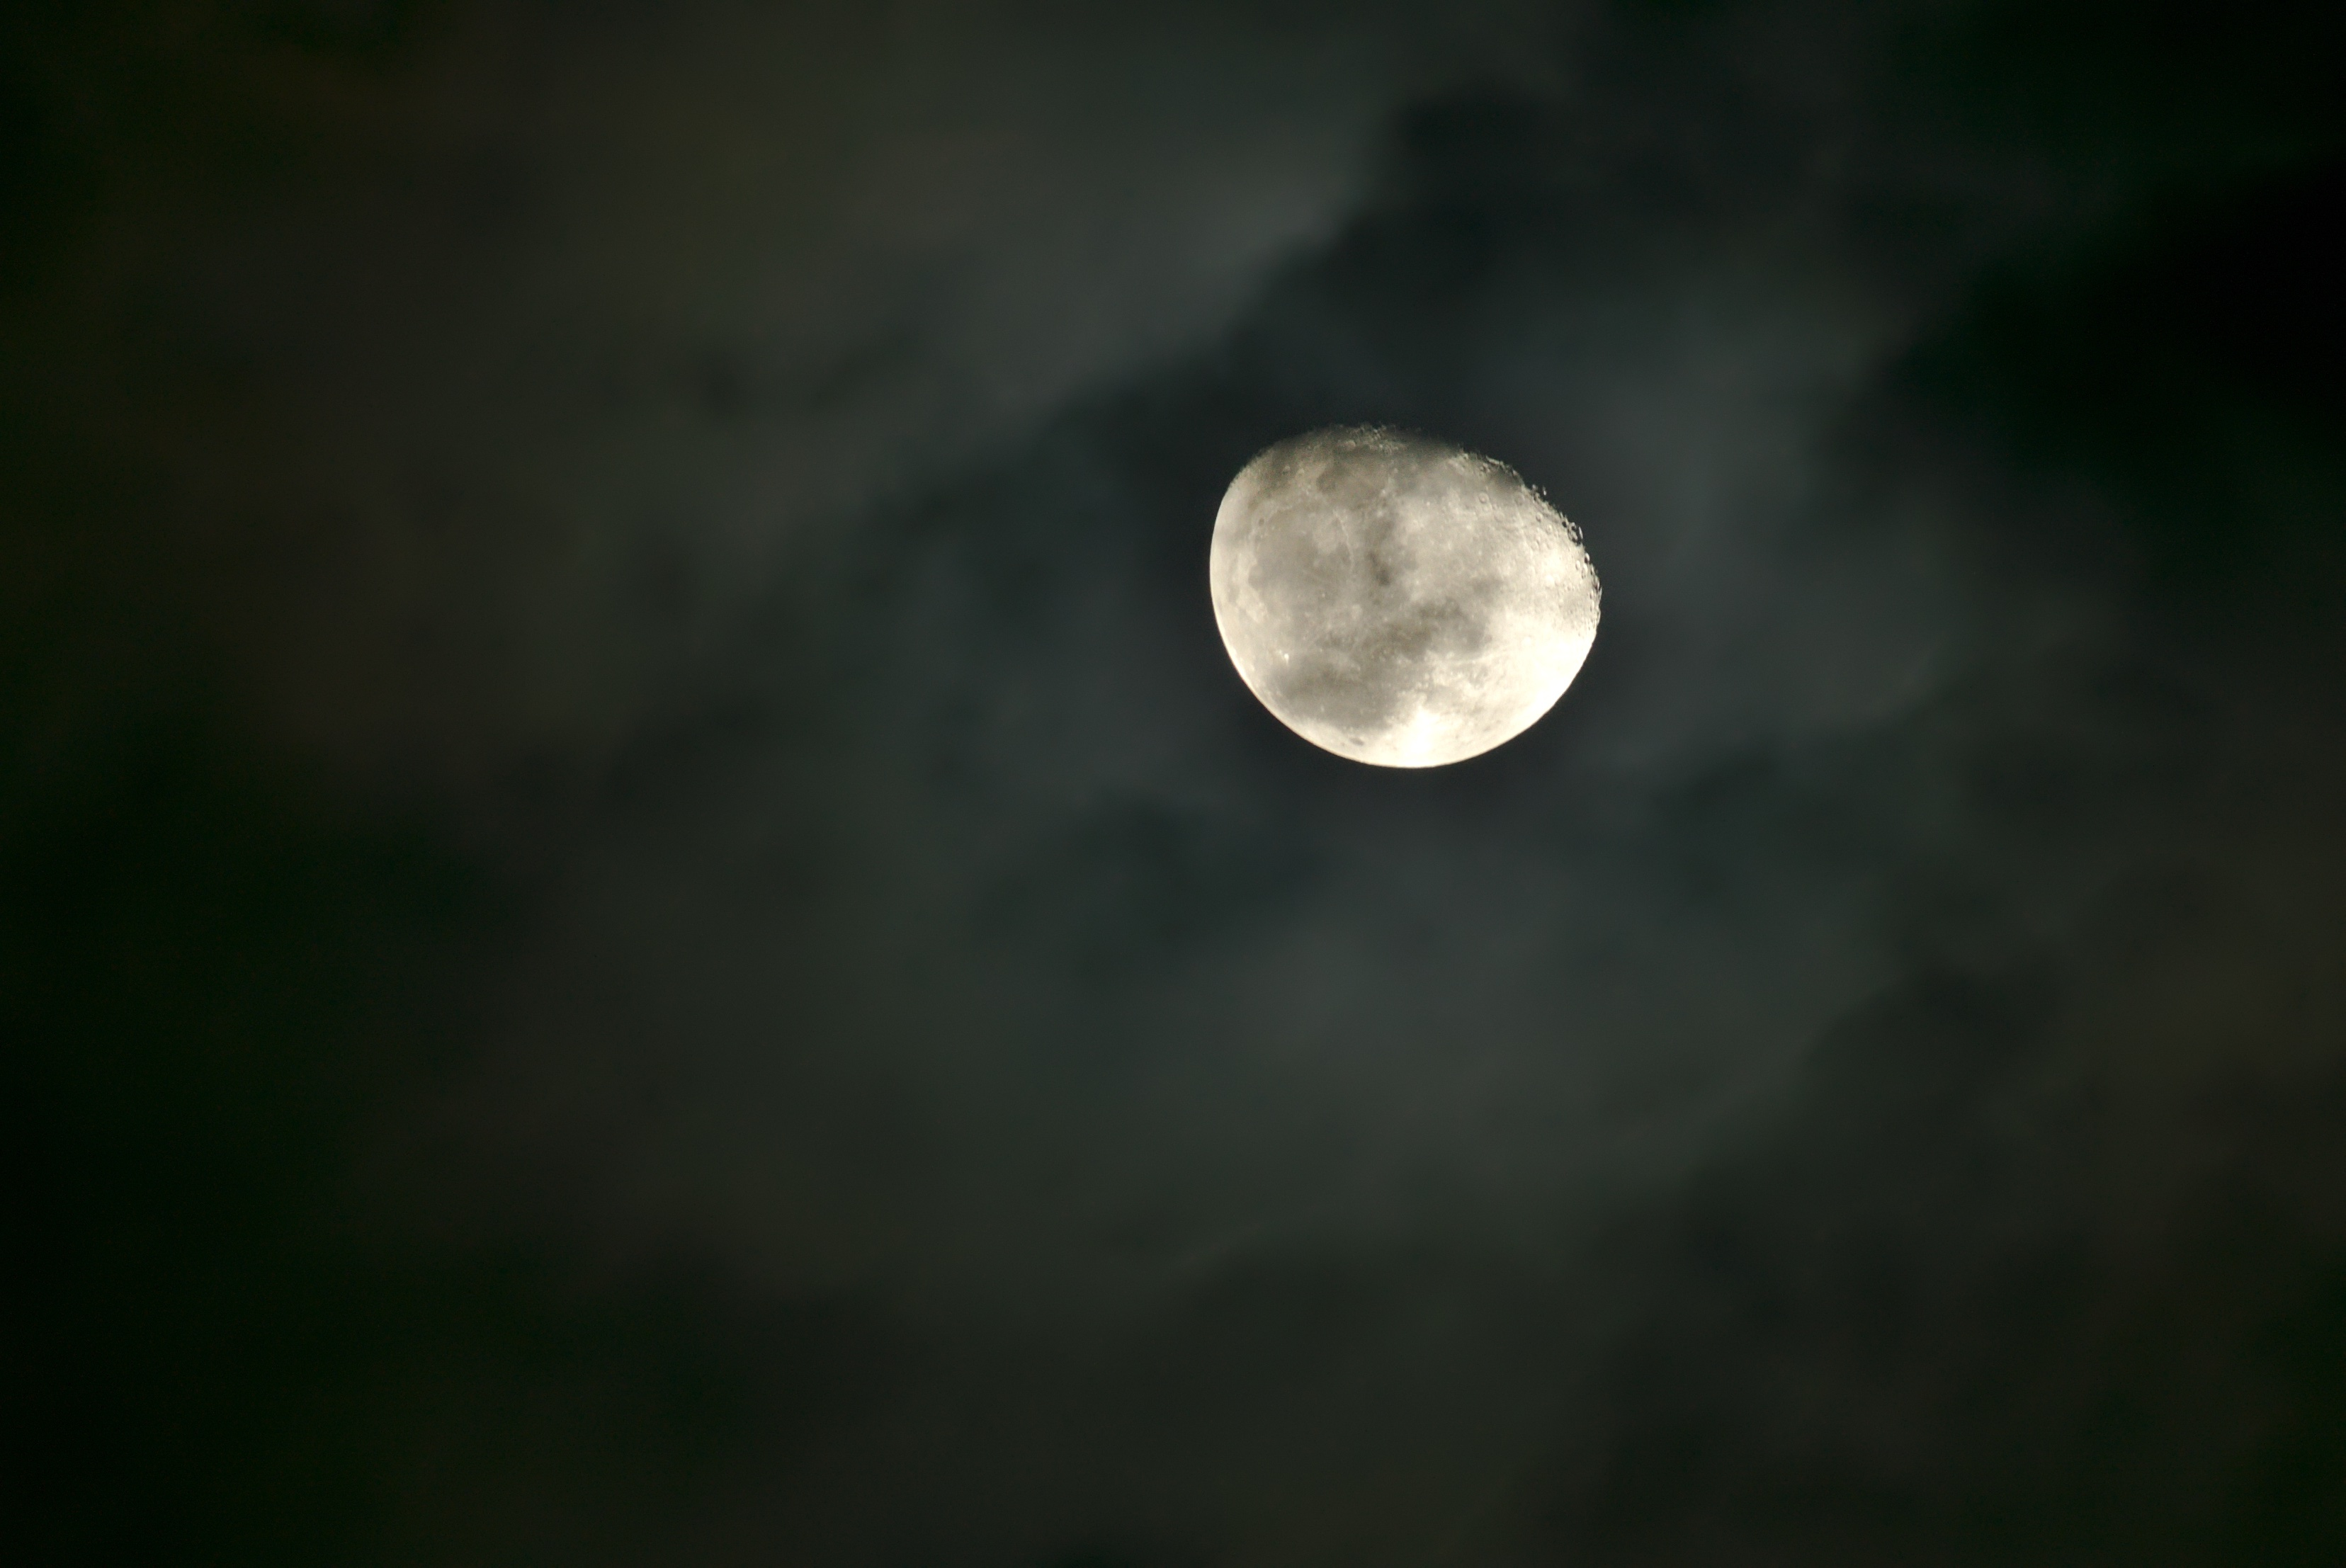 moon-in-night-sky-surrounded-by-clouds-of-grief.jpeg